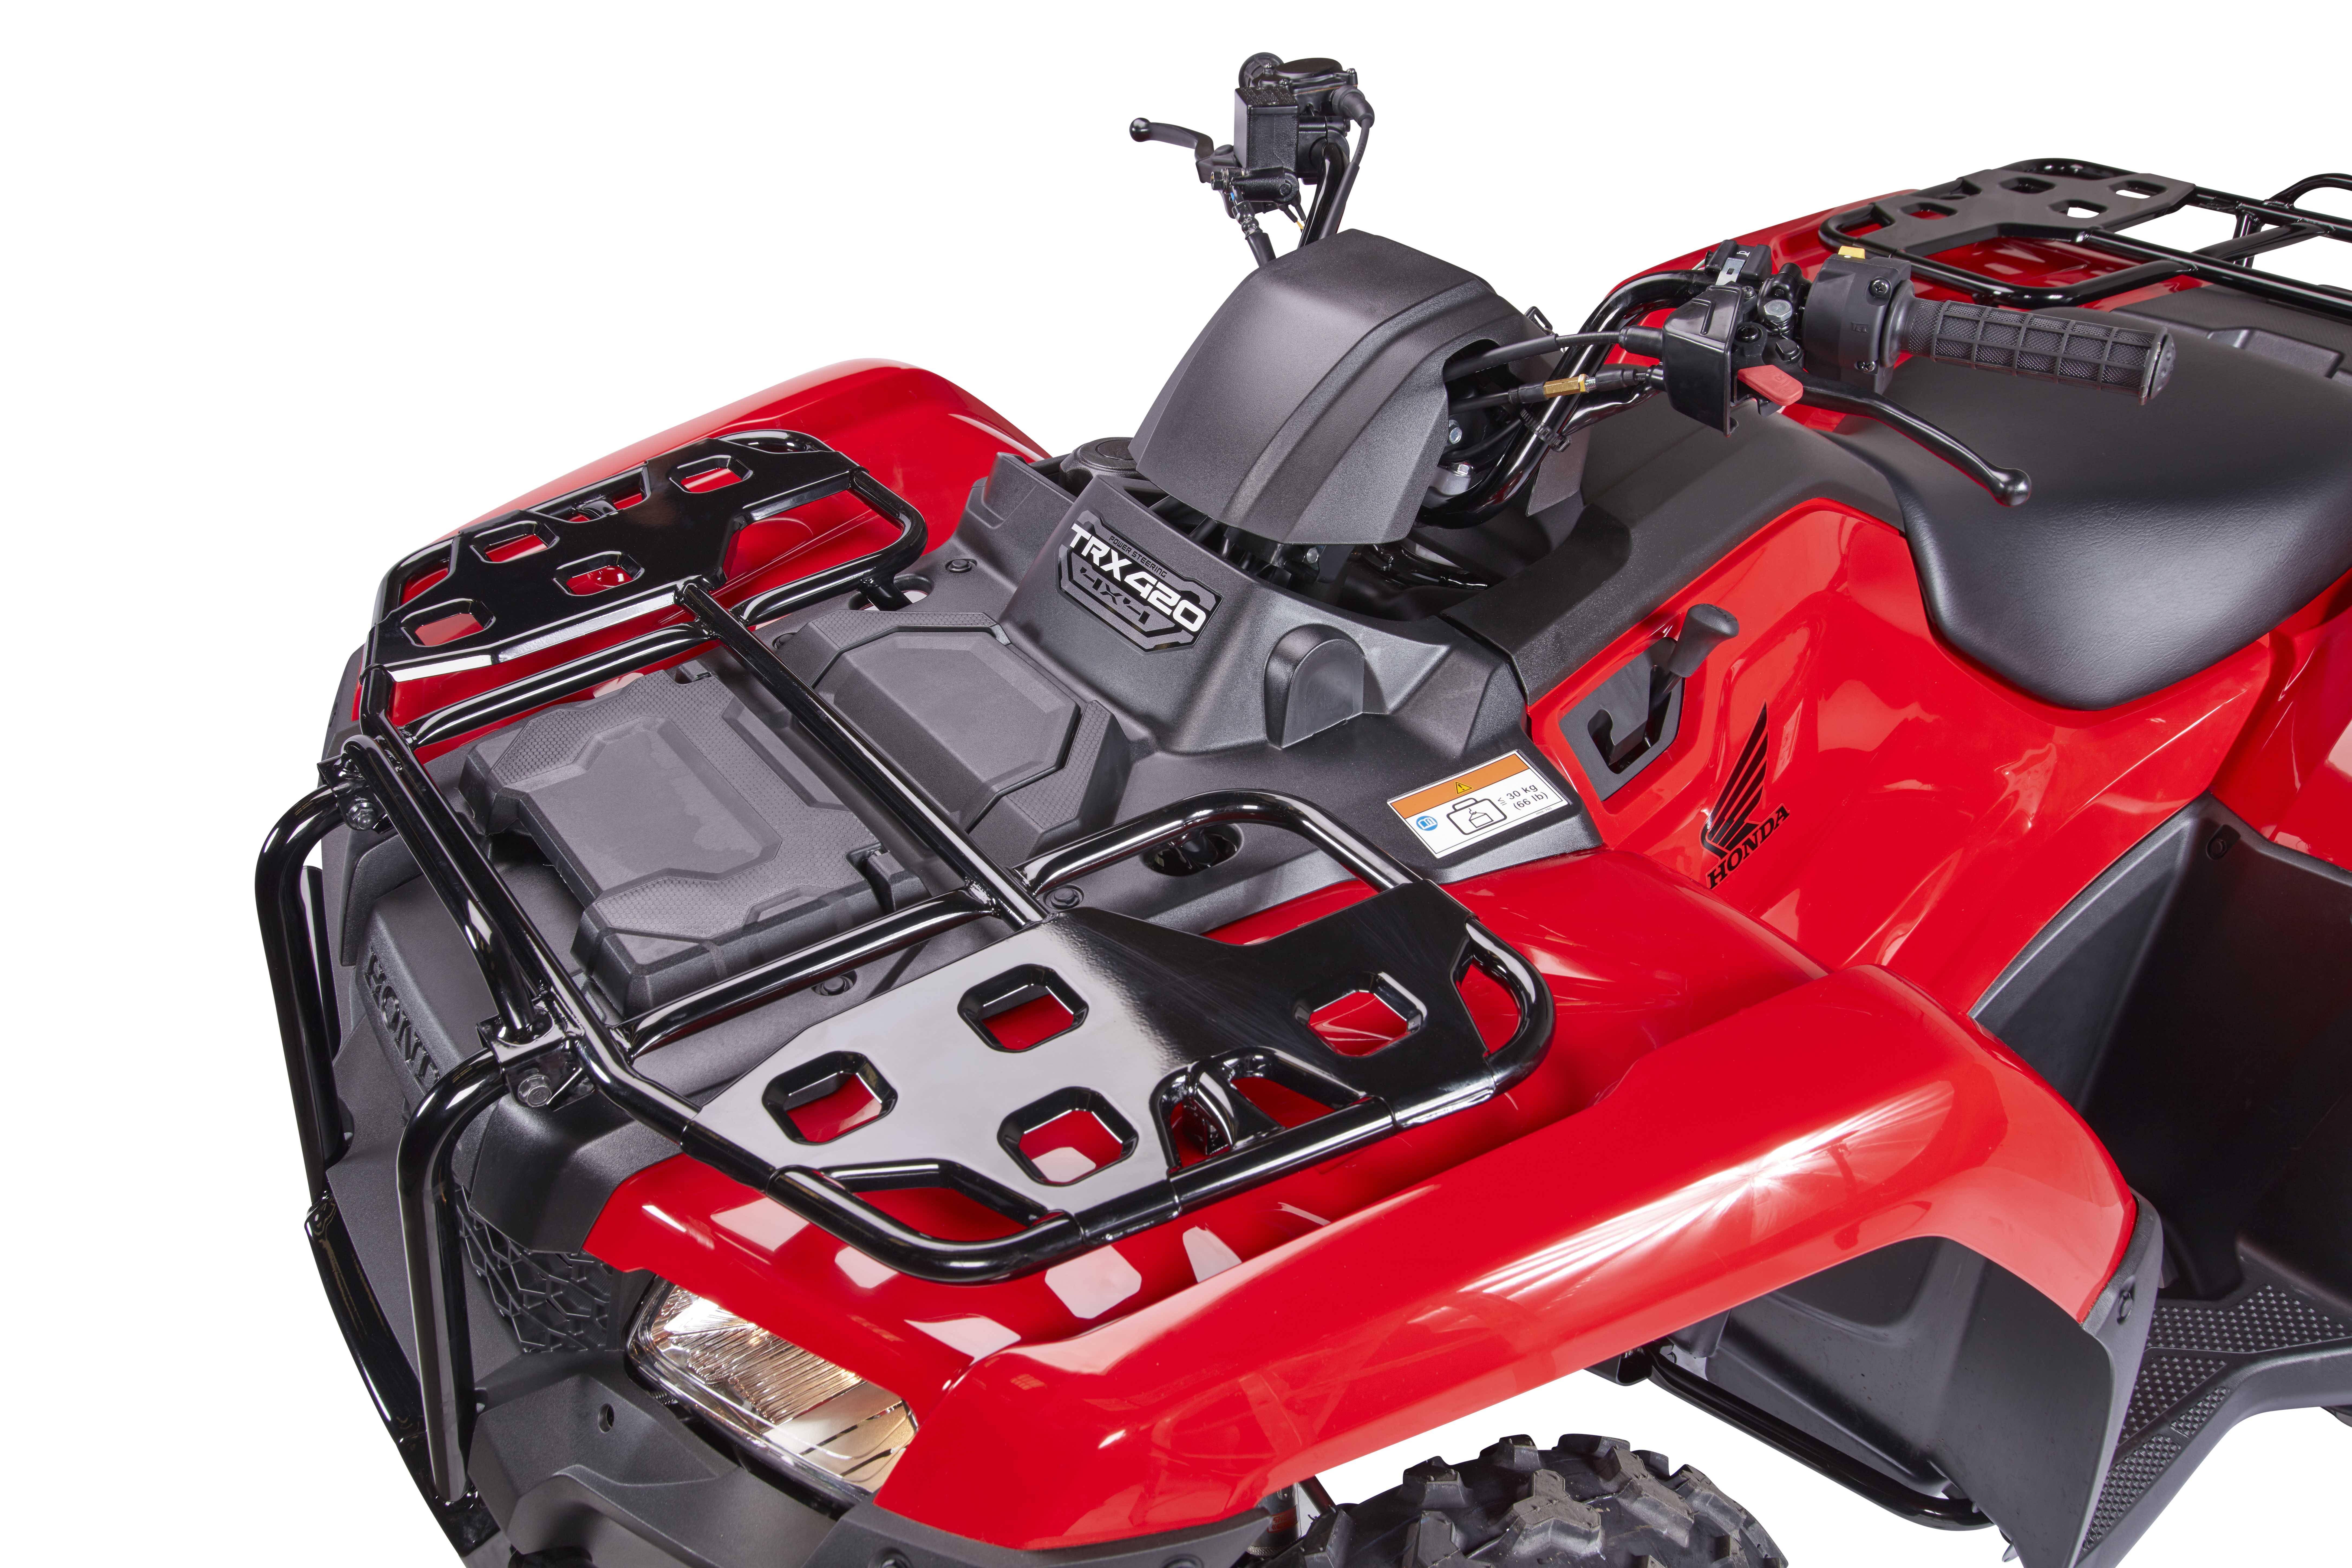 Image of 2020 Fourtrax 420 4wd range